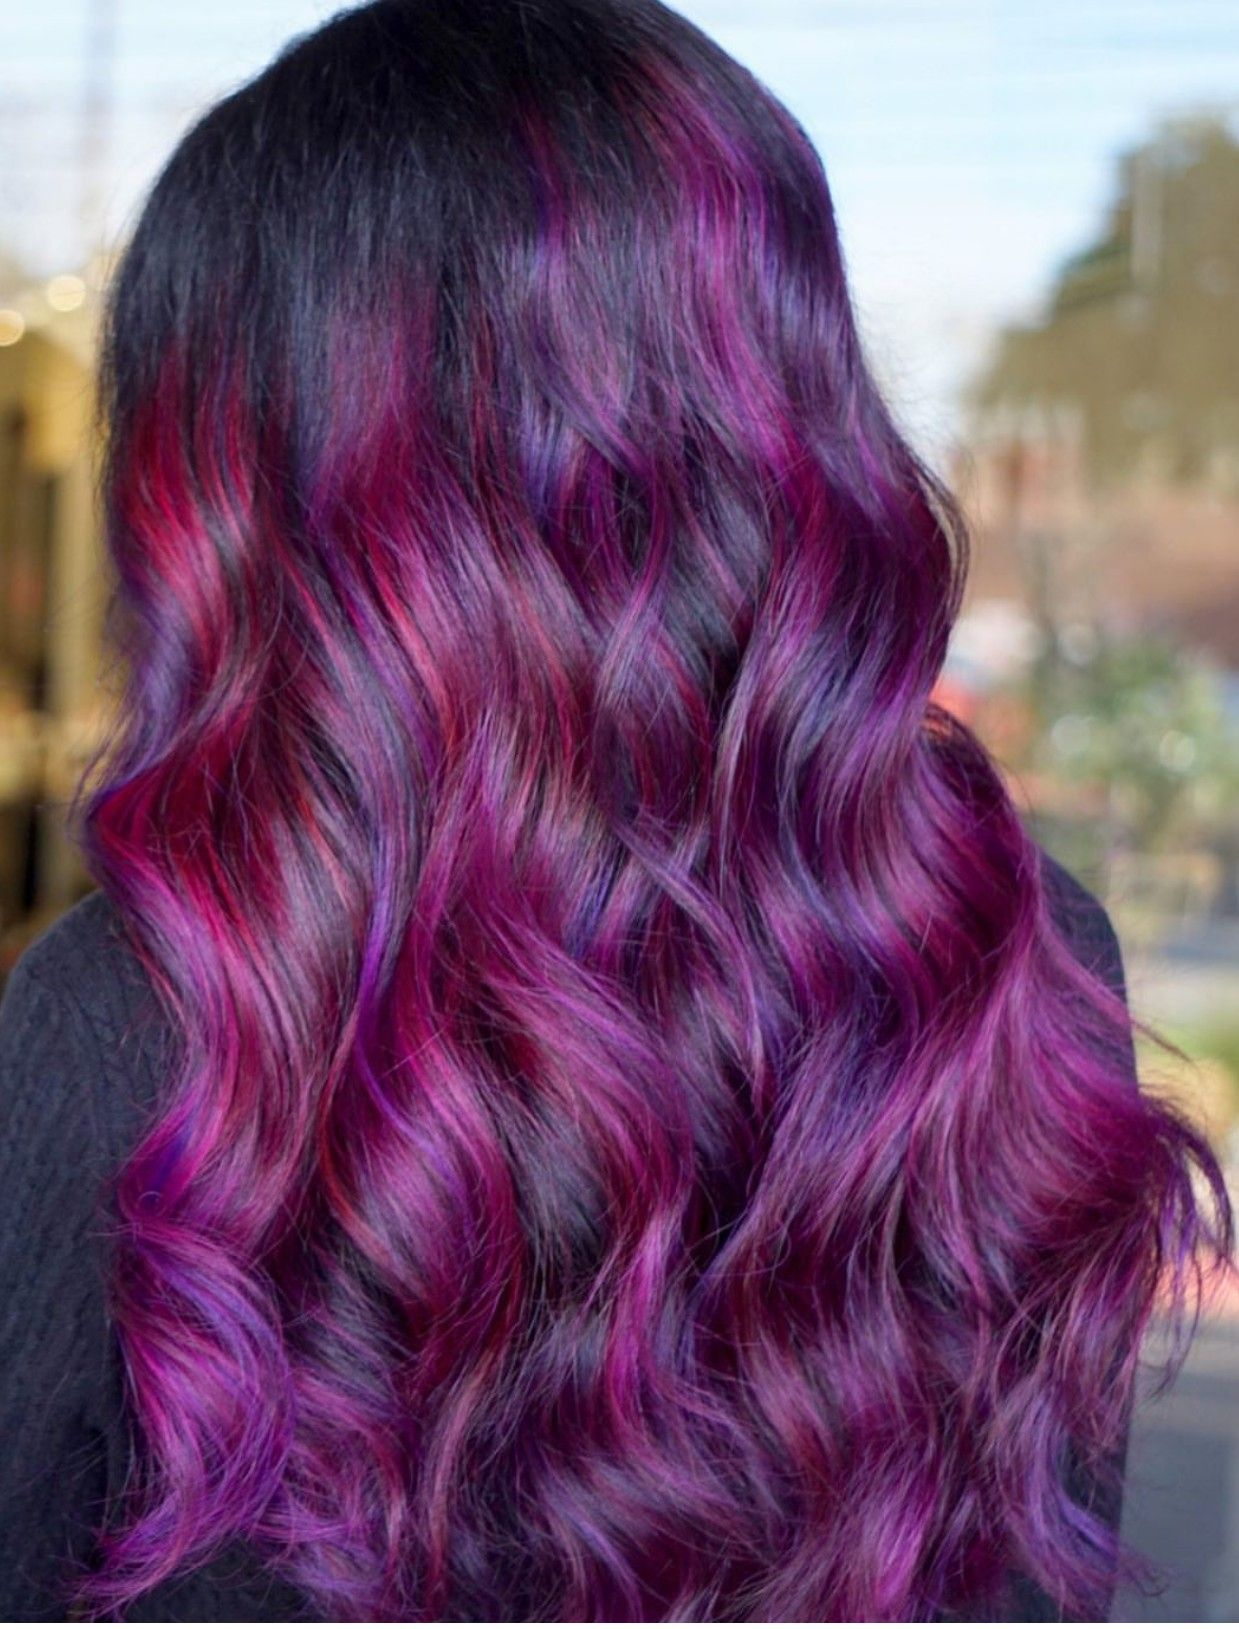 Some Great Design Ideas For Red Purple Hair